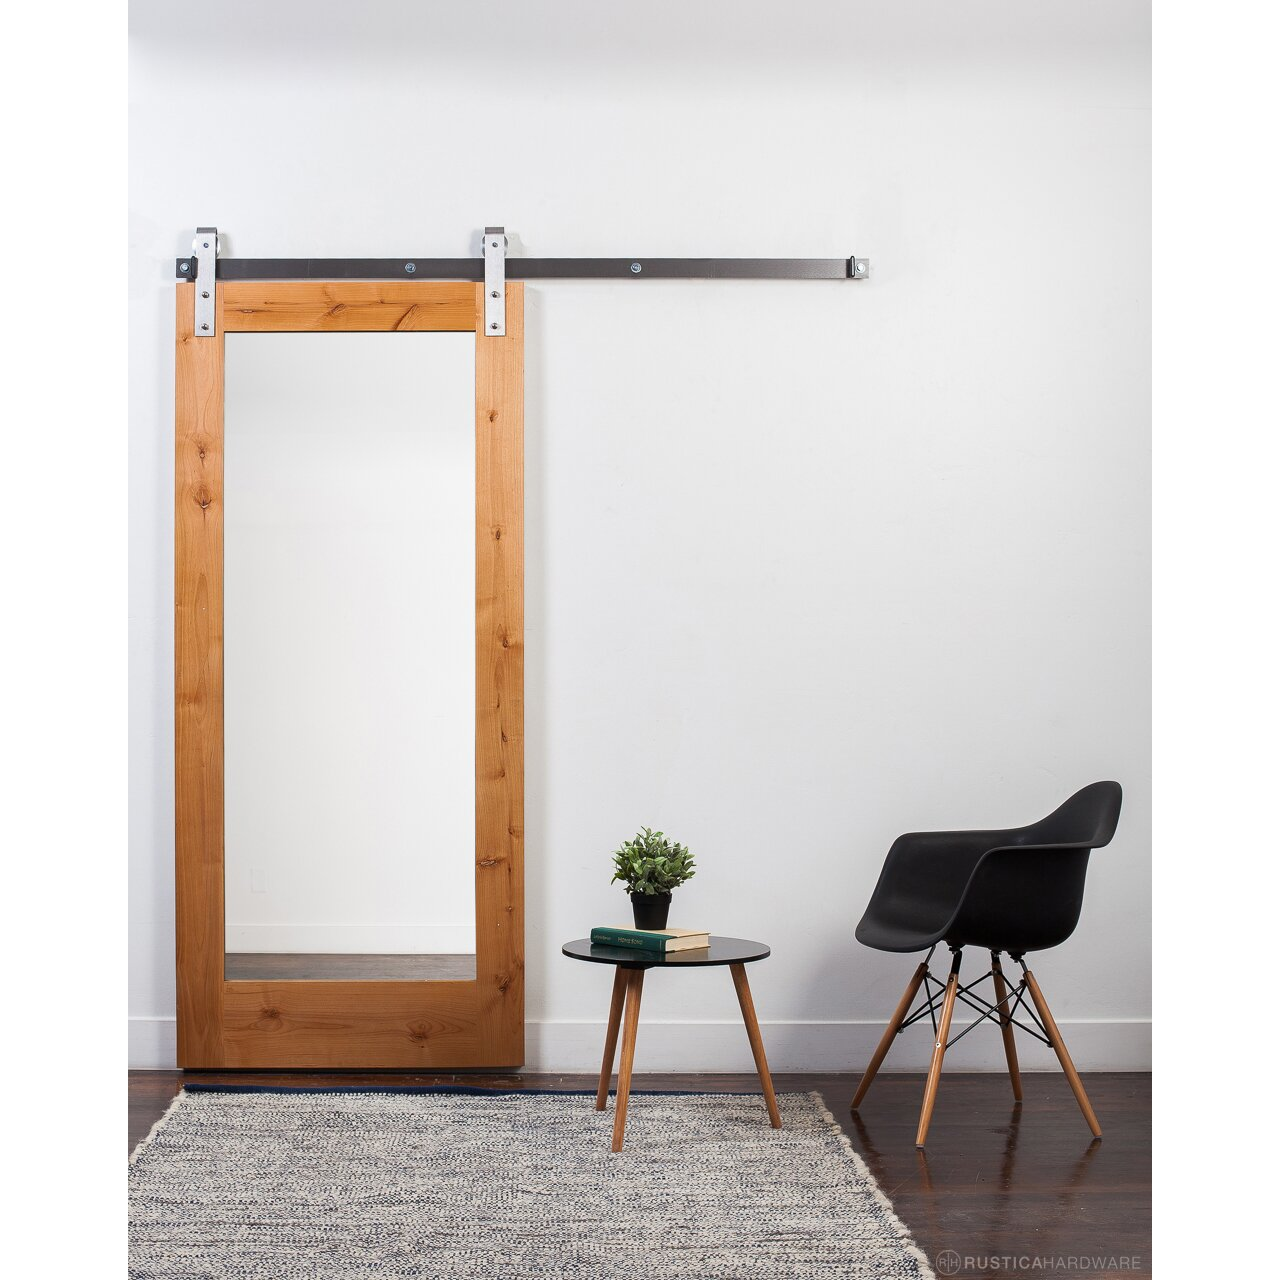 1280 #9B6130 Wood And Mirror 1 Panel Clear Coated Sliding Barn Interior Door By  image Interior Doors With Mirrors 11631280